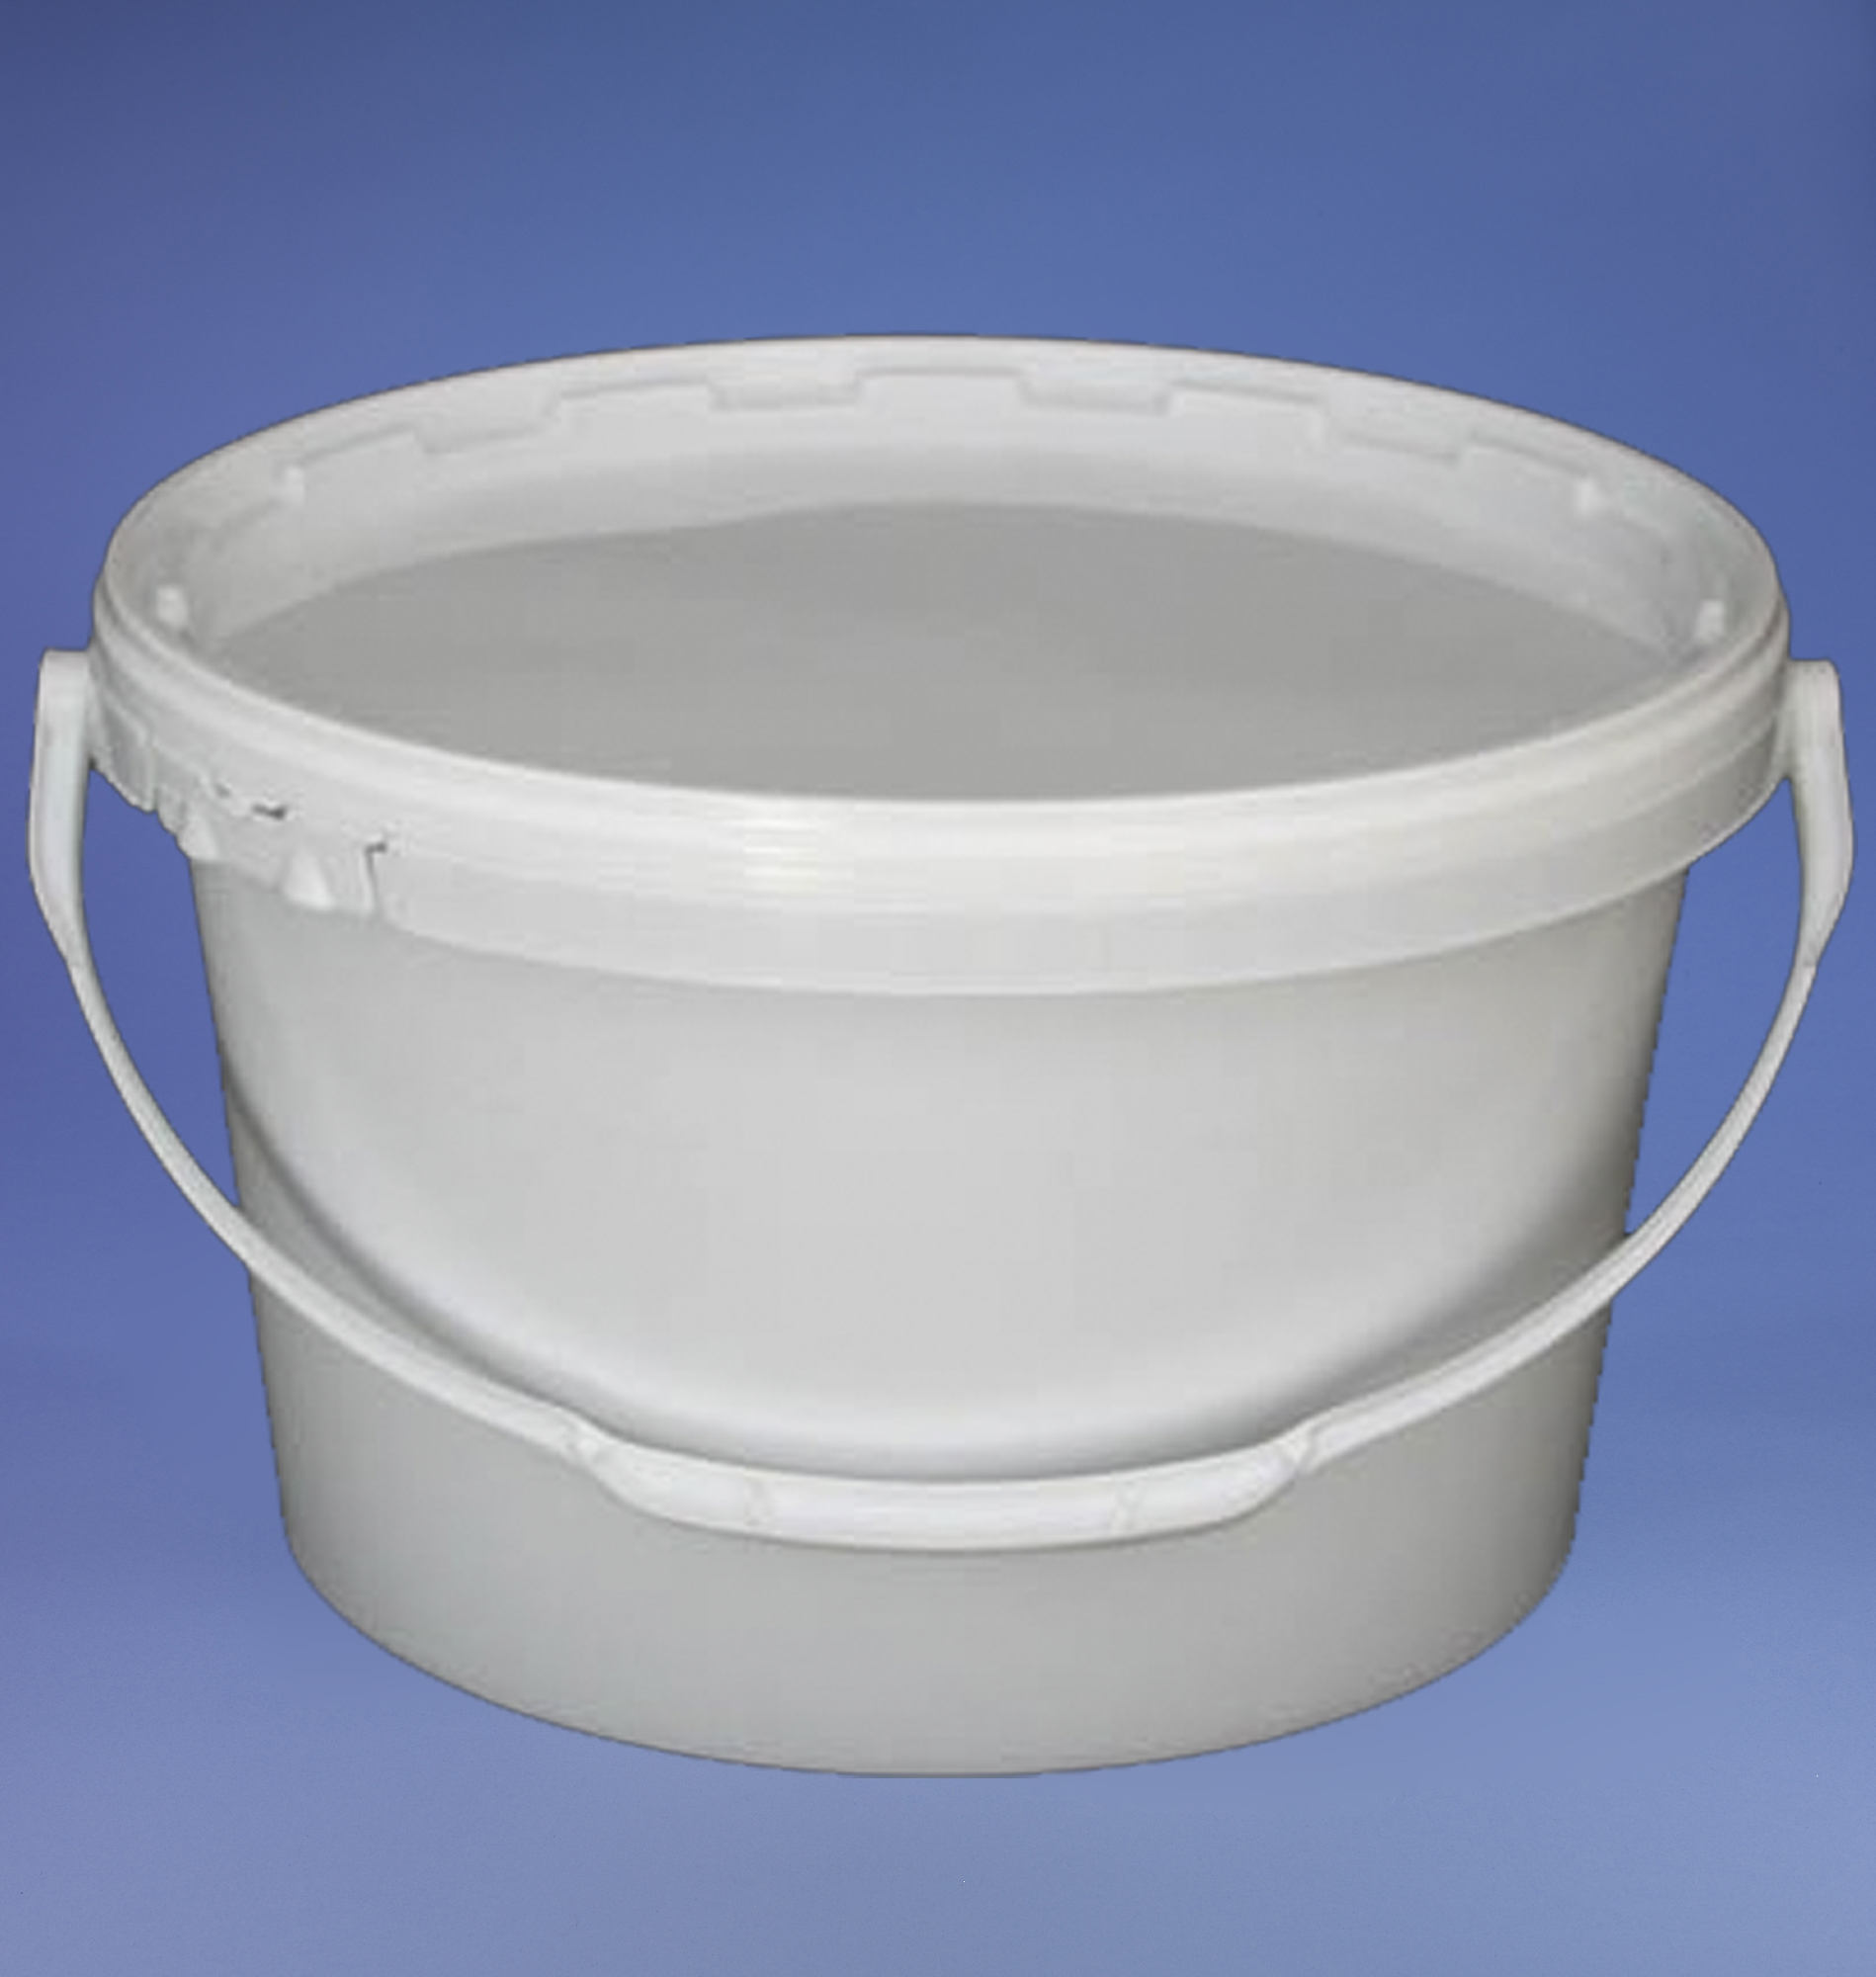 PB12OW Oval White Bucket 12.8L